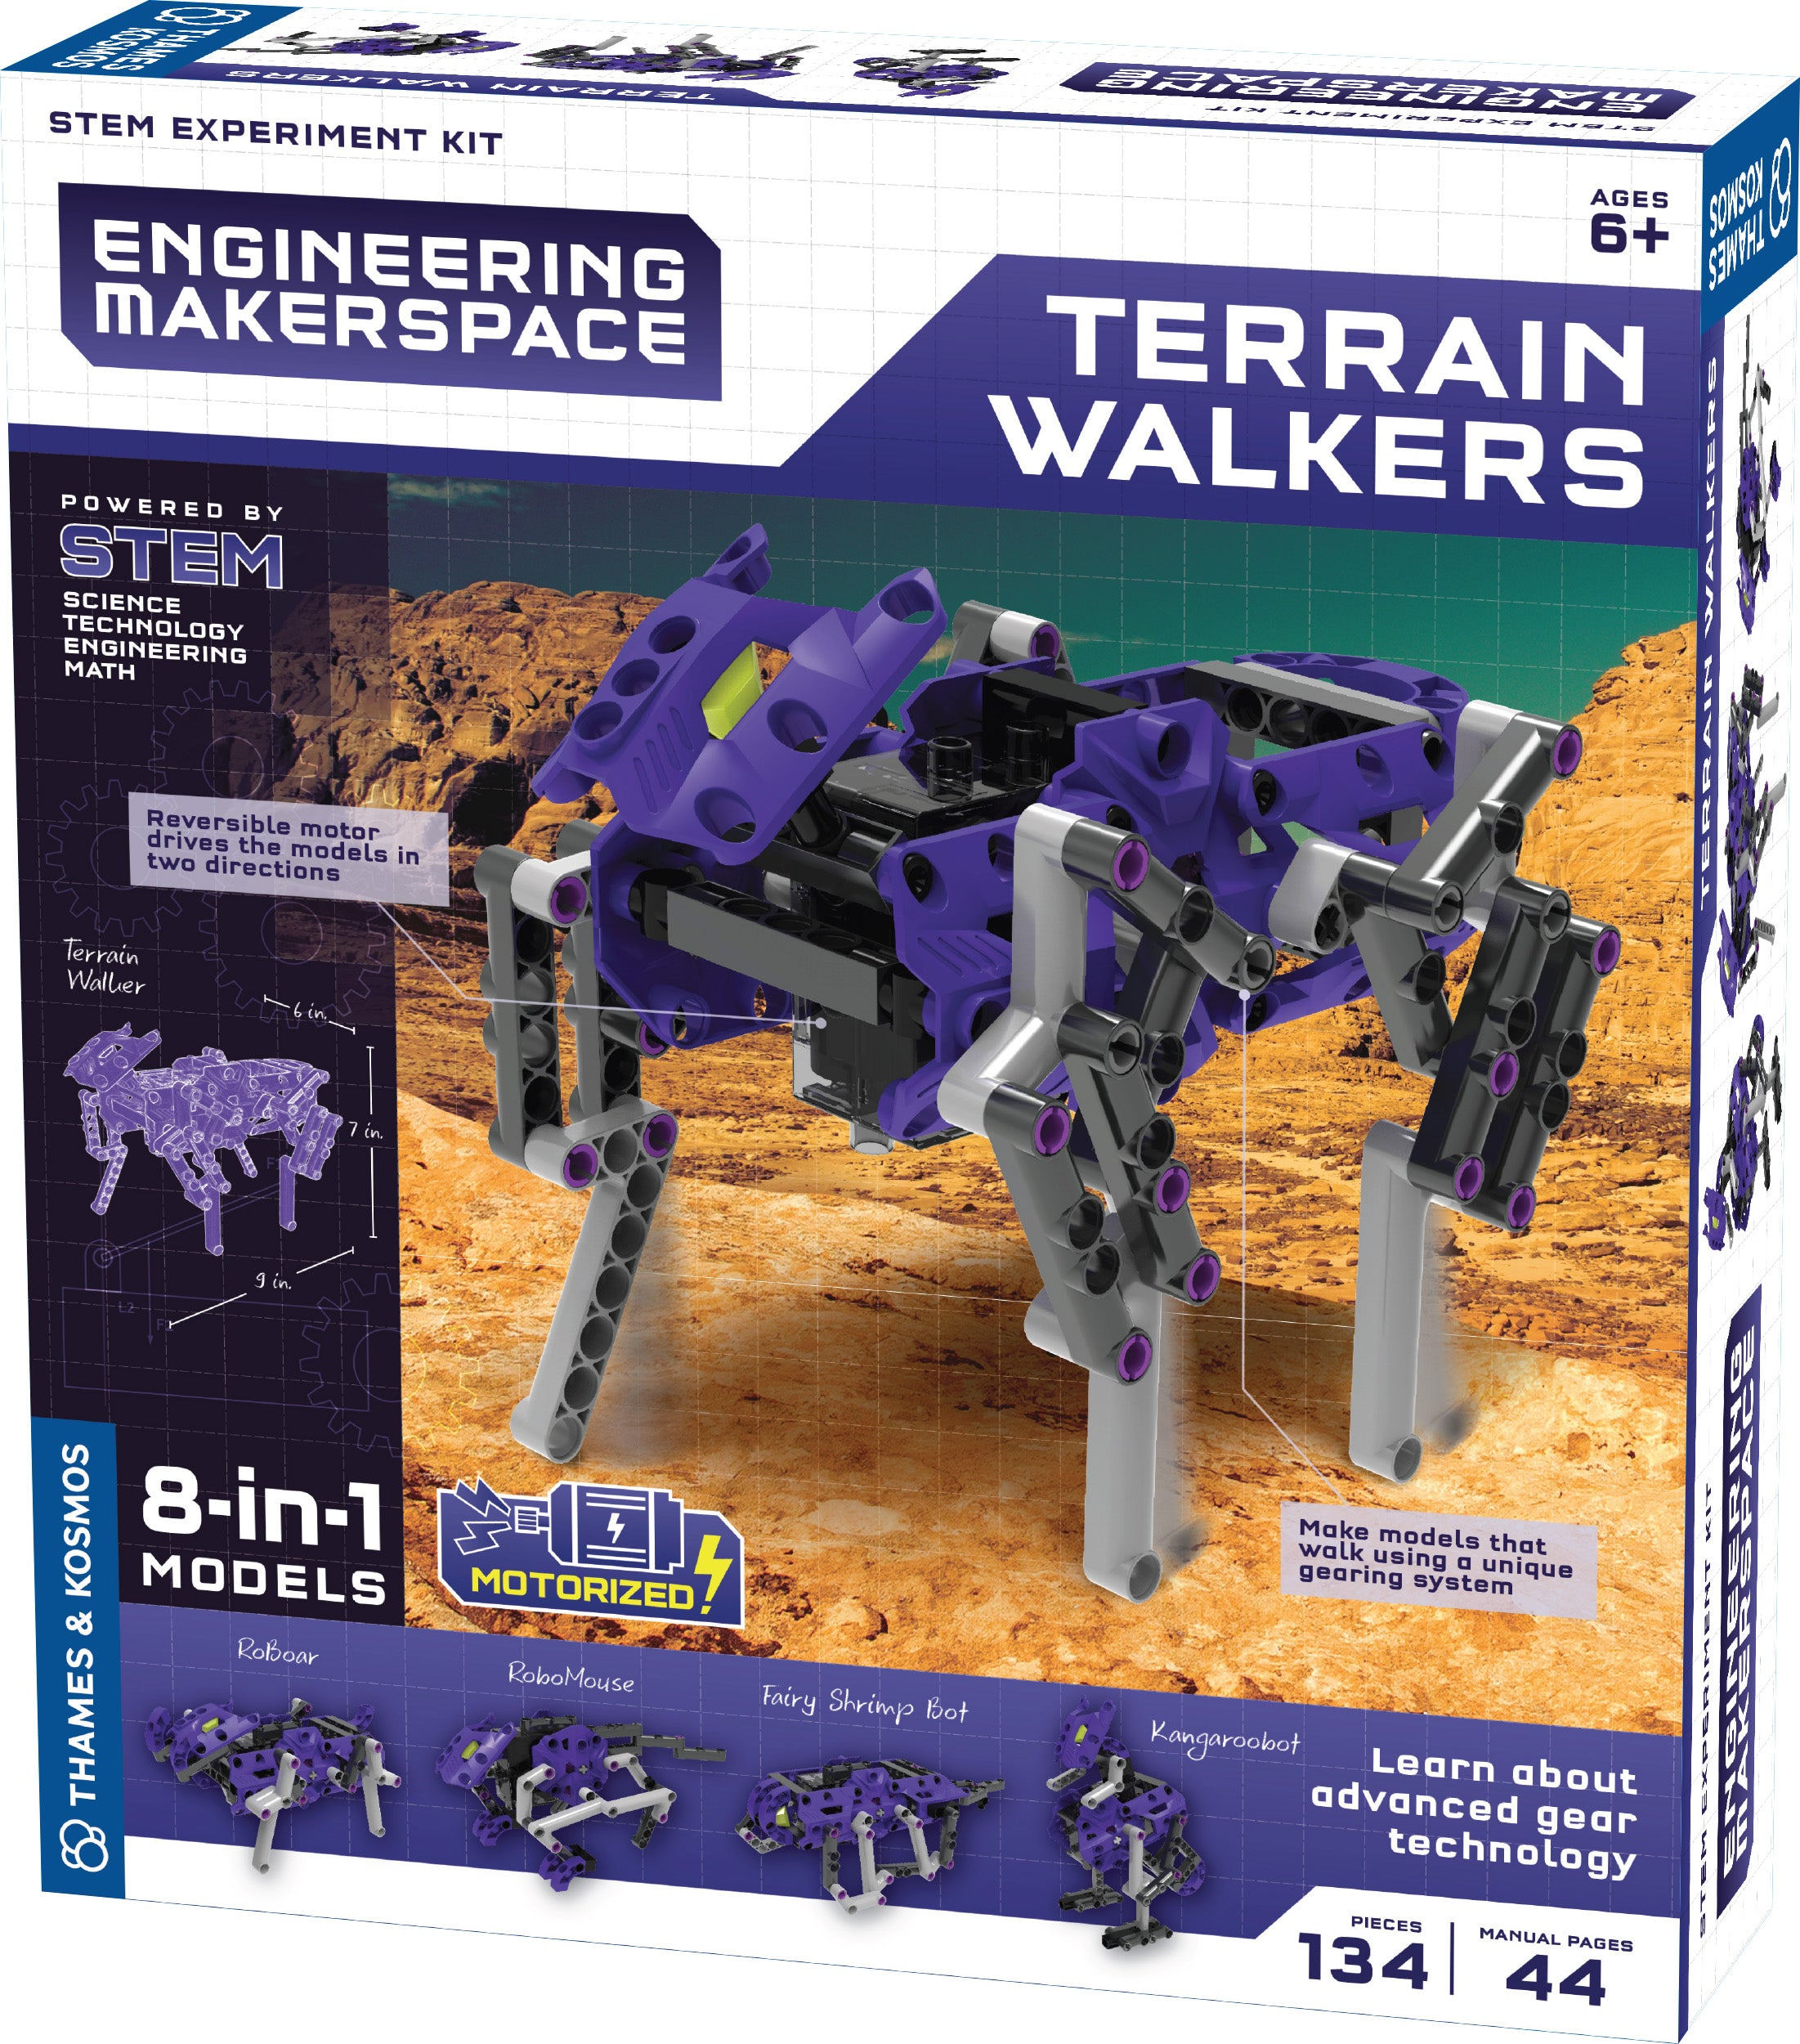 Engineering Makerspace - Terrain Walkers